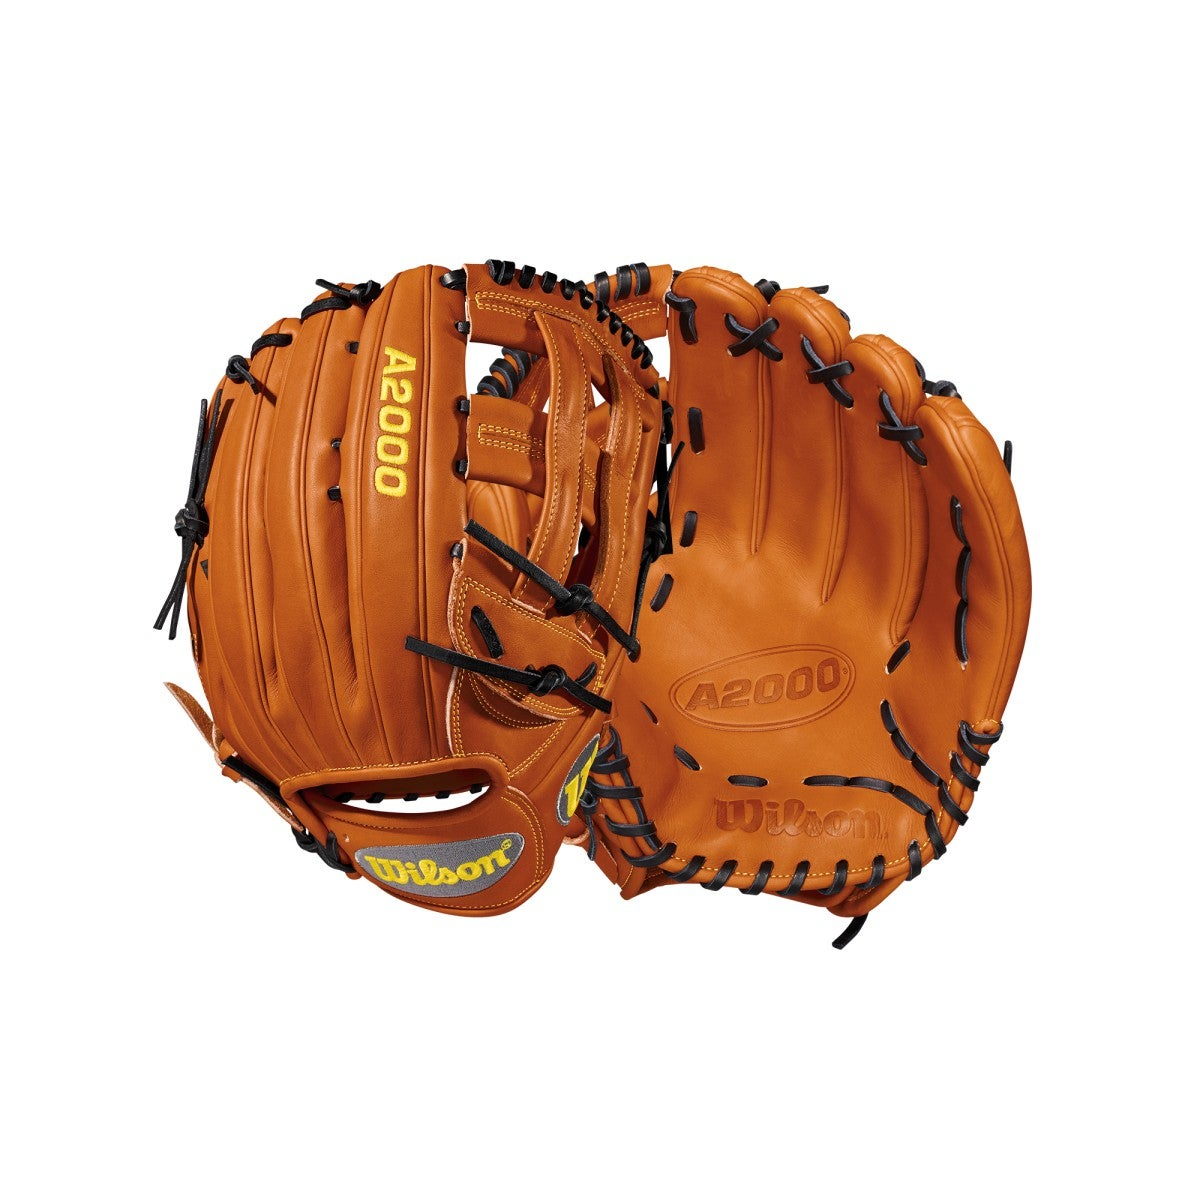 2018 Wilson A2000 1799 Outfield Baseball Glove - 12.75